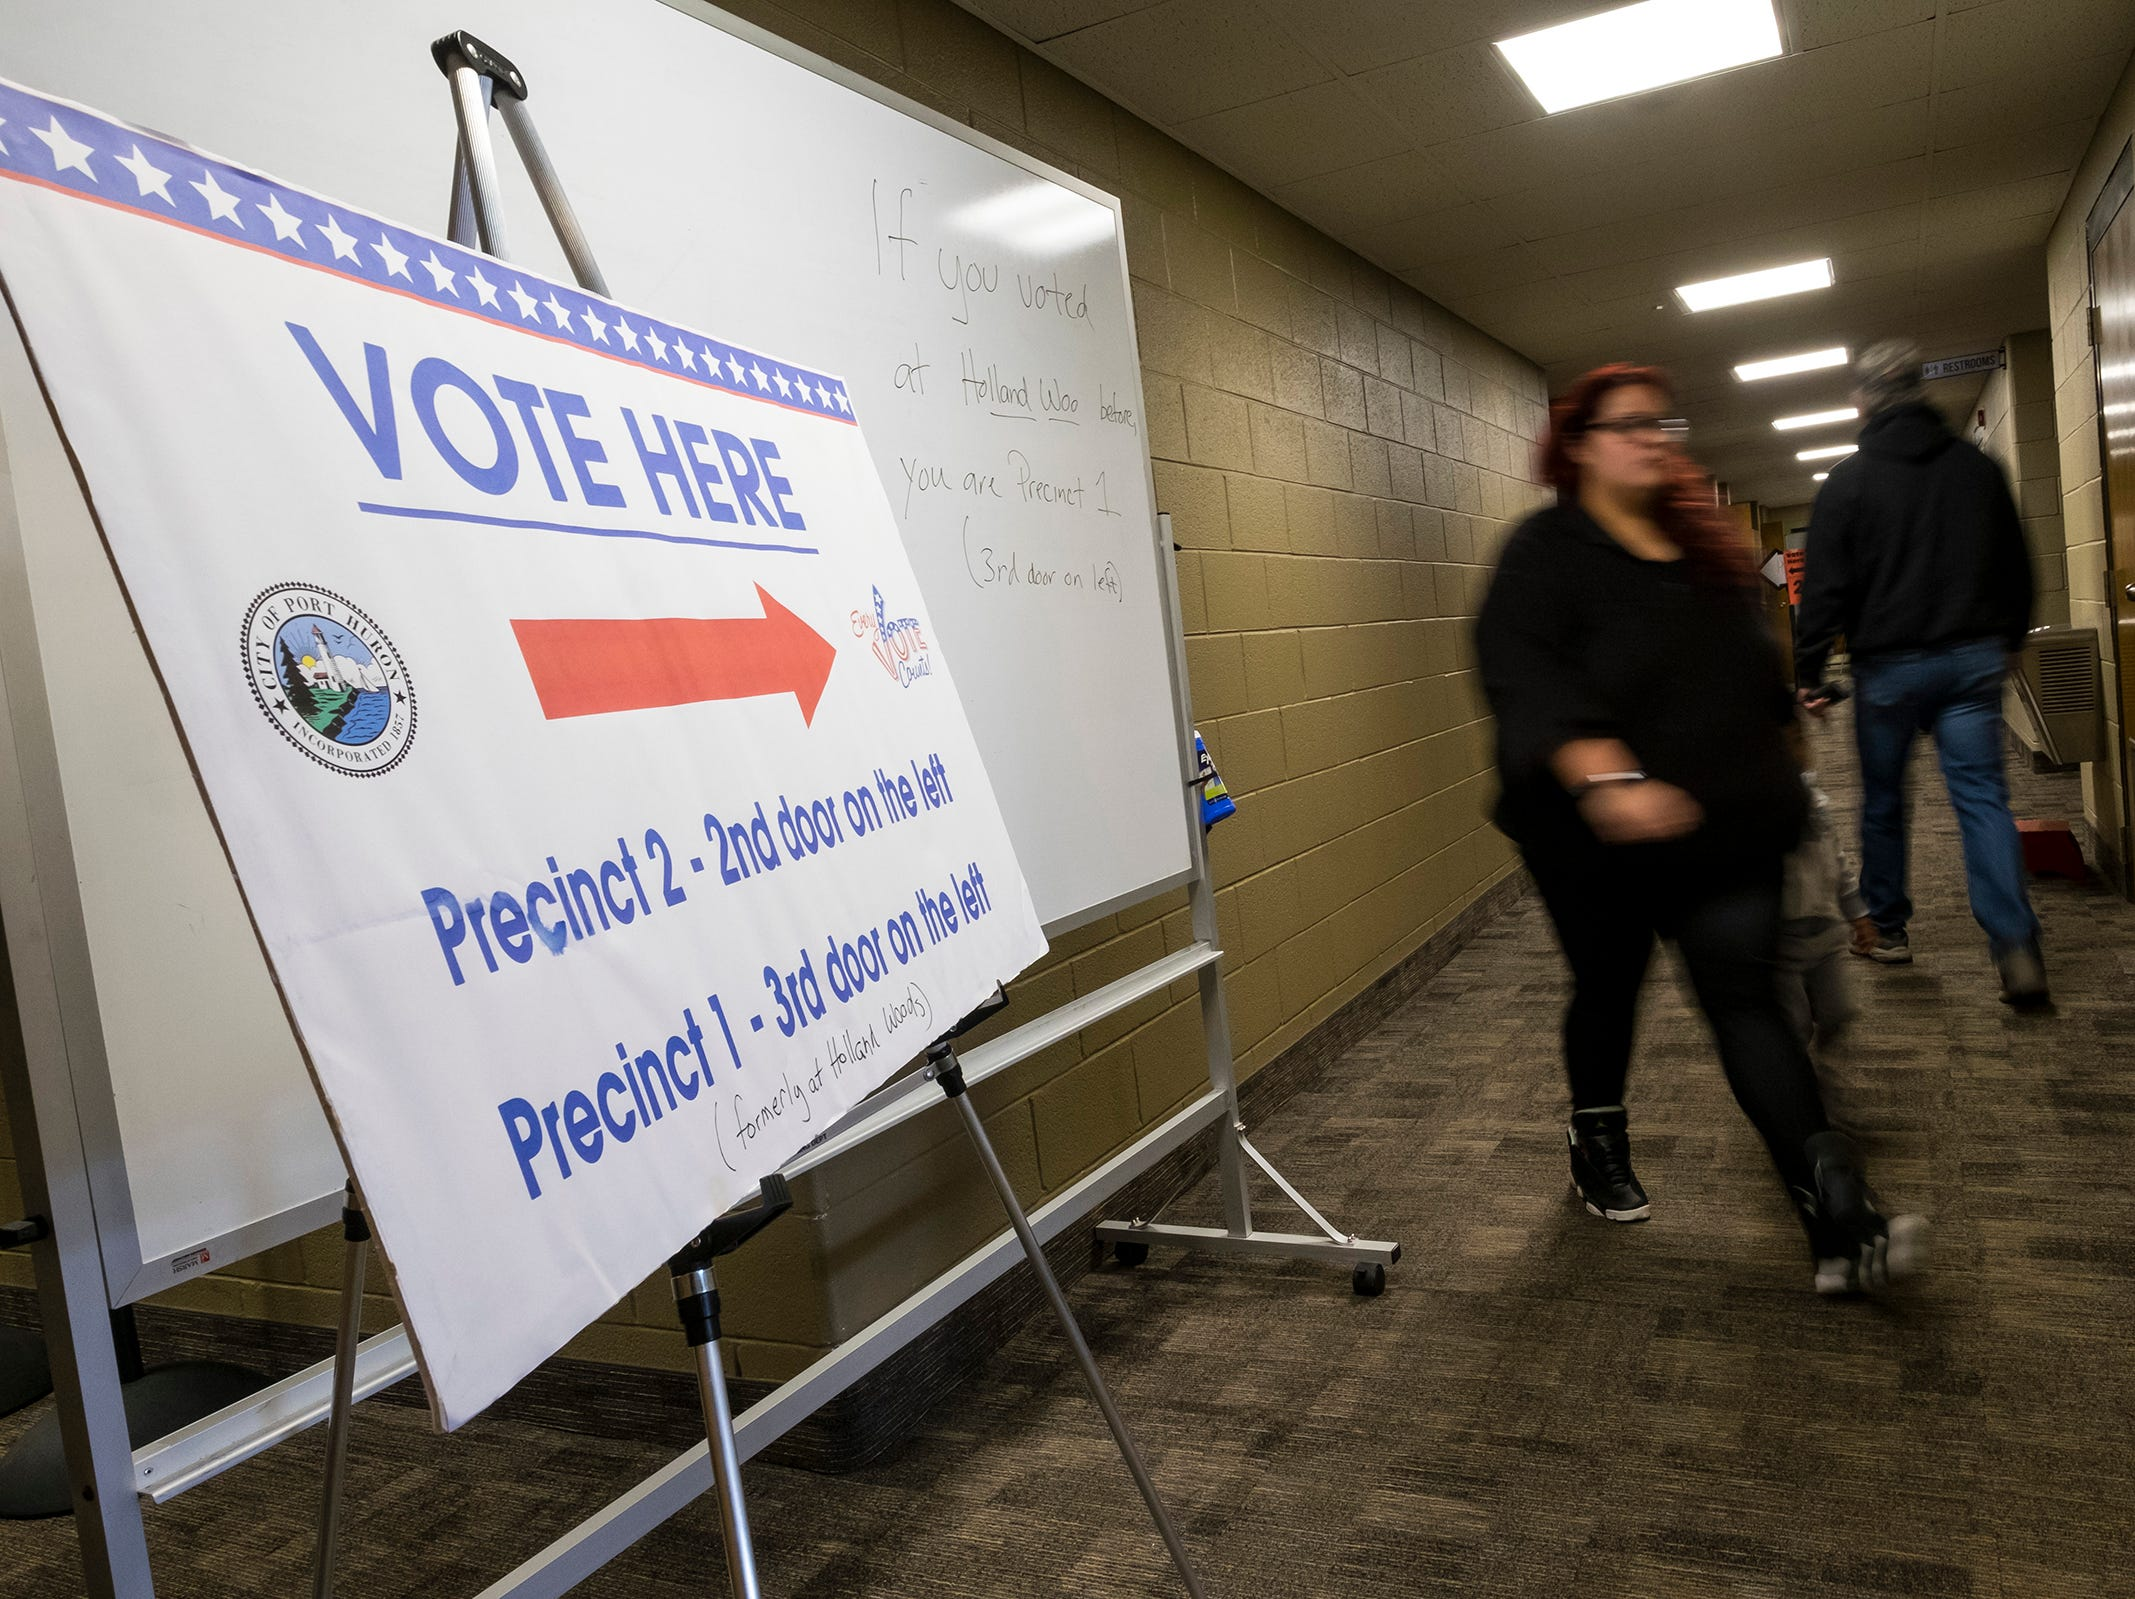 Voters walk through the hallway at Colonial Woods Missionary Church, where the voting locations for precincts 1 and 2 are during the mid-term elections Tuesday, Nov. 6, 2018.